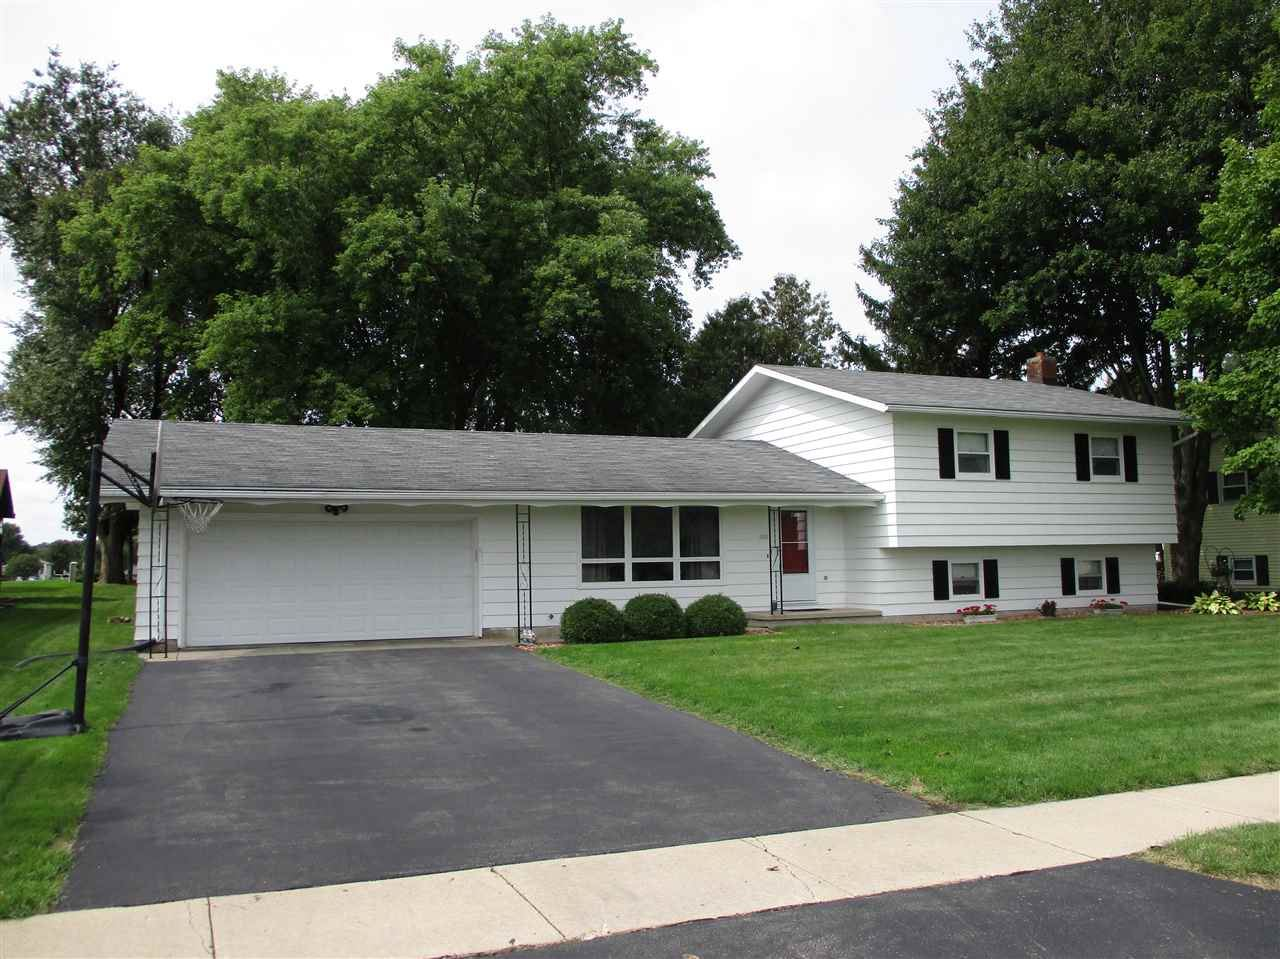 324 S CLEVELAND Ave, De Forest, WI 53532-0000 - #: 1893352